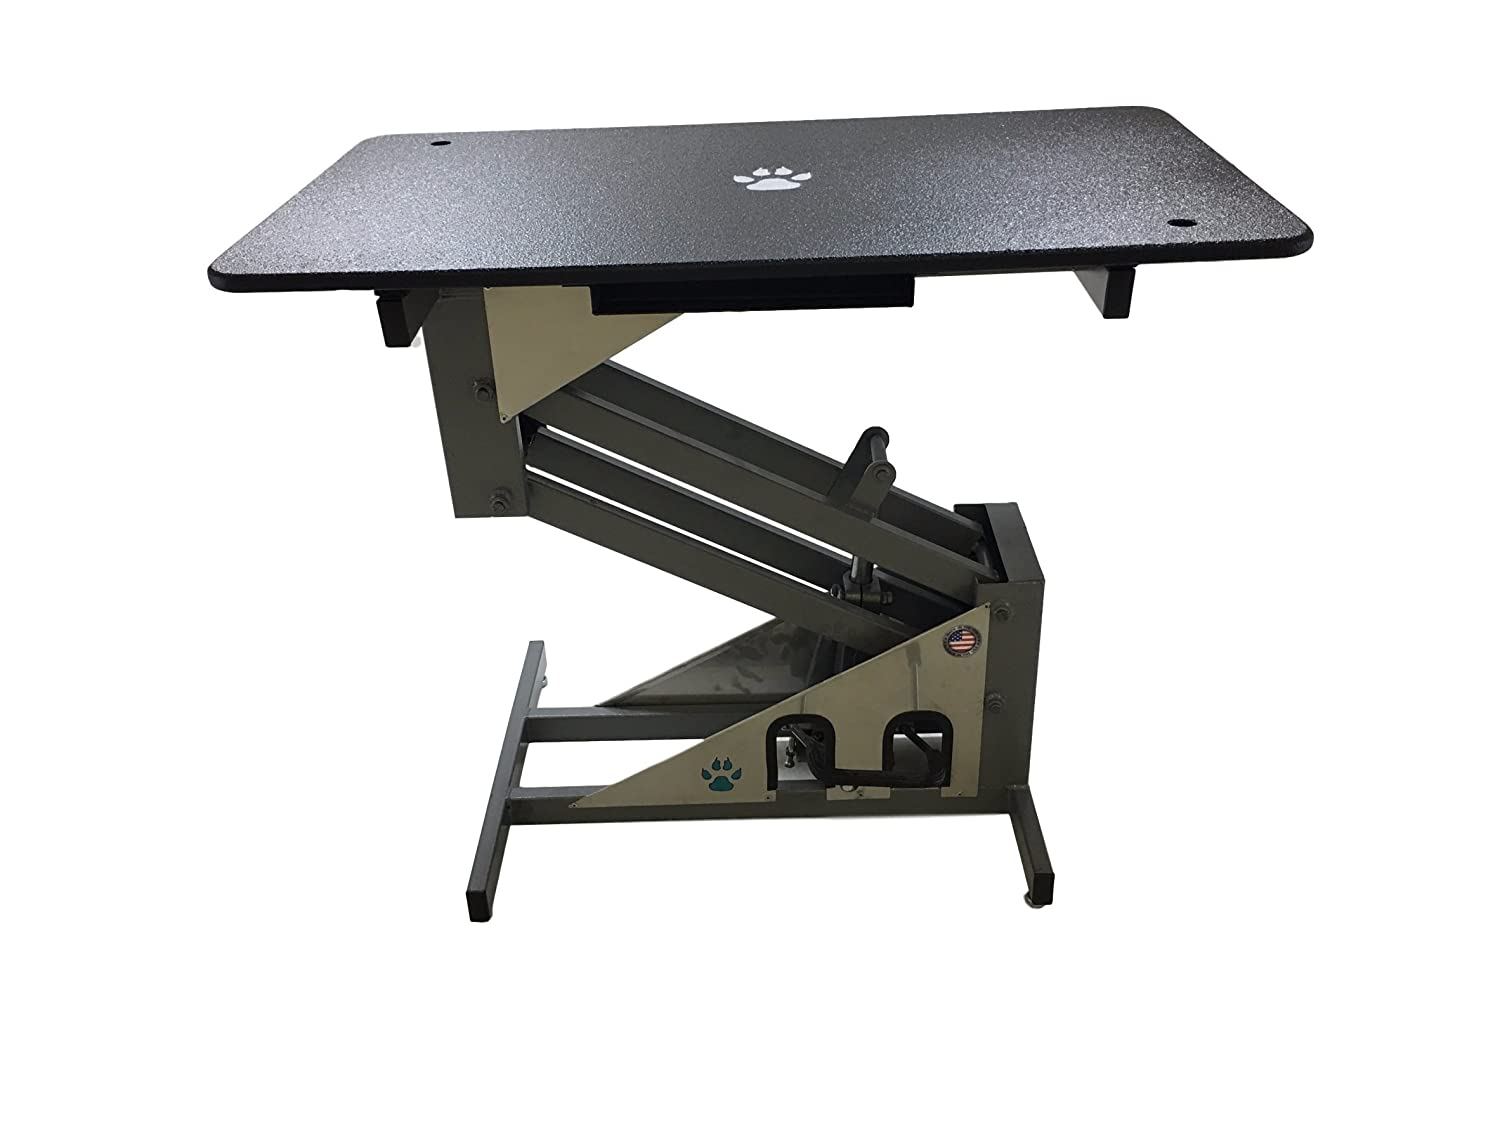 Affordable Dog Grooming Table Arm Pet Grooming Supplies : Amazon.com: Groomeru0027s Best Hydraulic Grooming Table  for Pets, 24 by 36-Inch